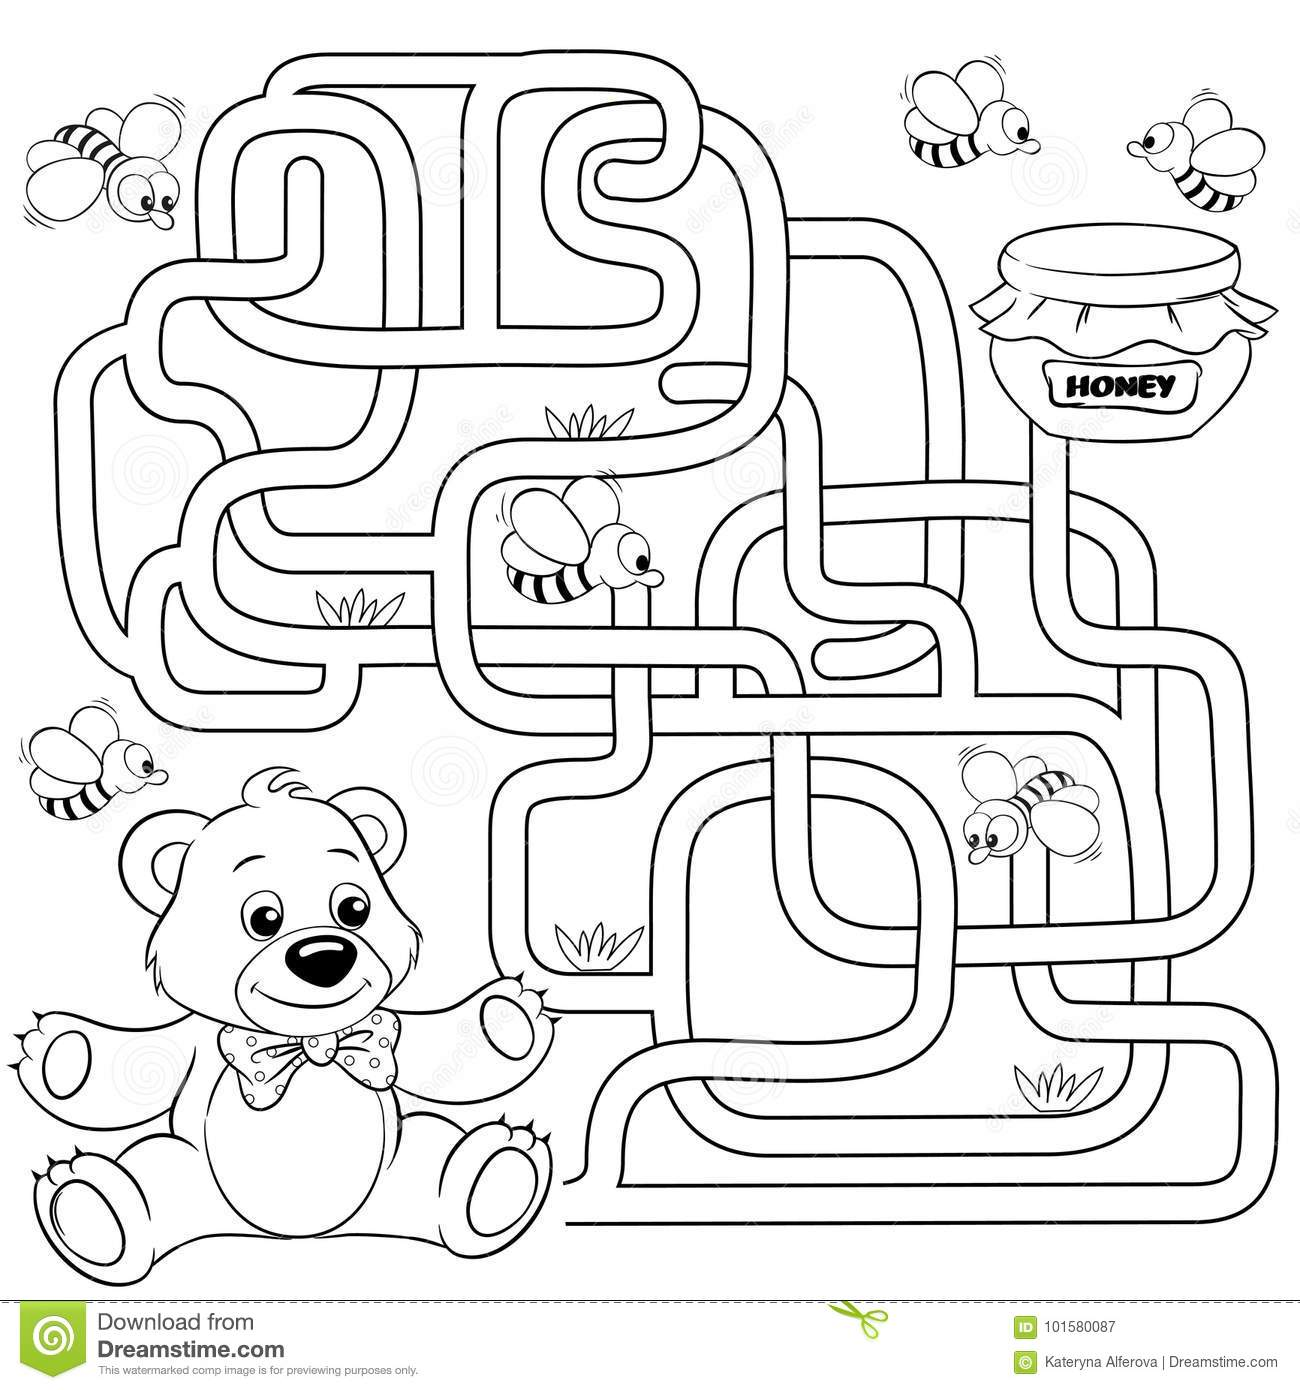 Help Bear Find Path To Honey. Labyrinth. Maze Game For